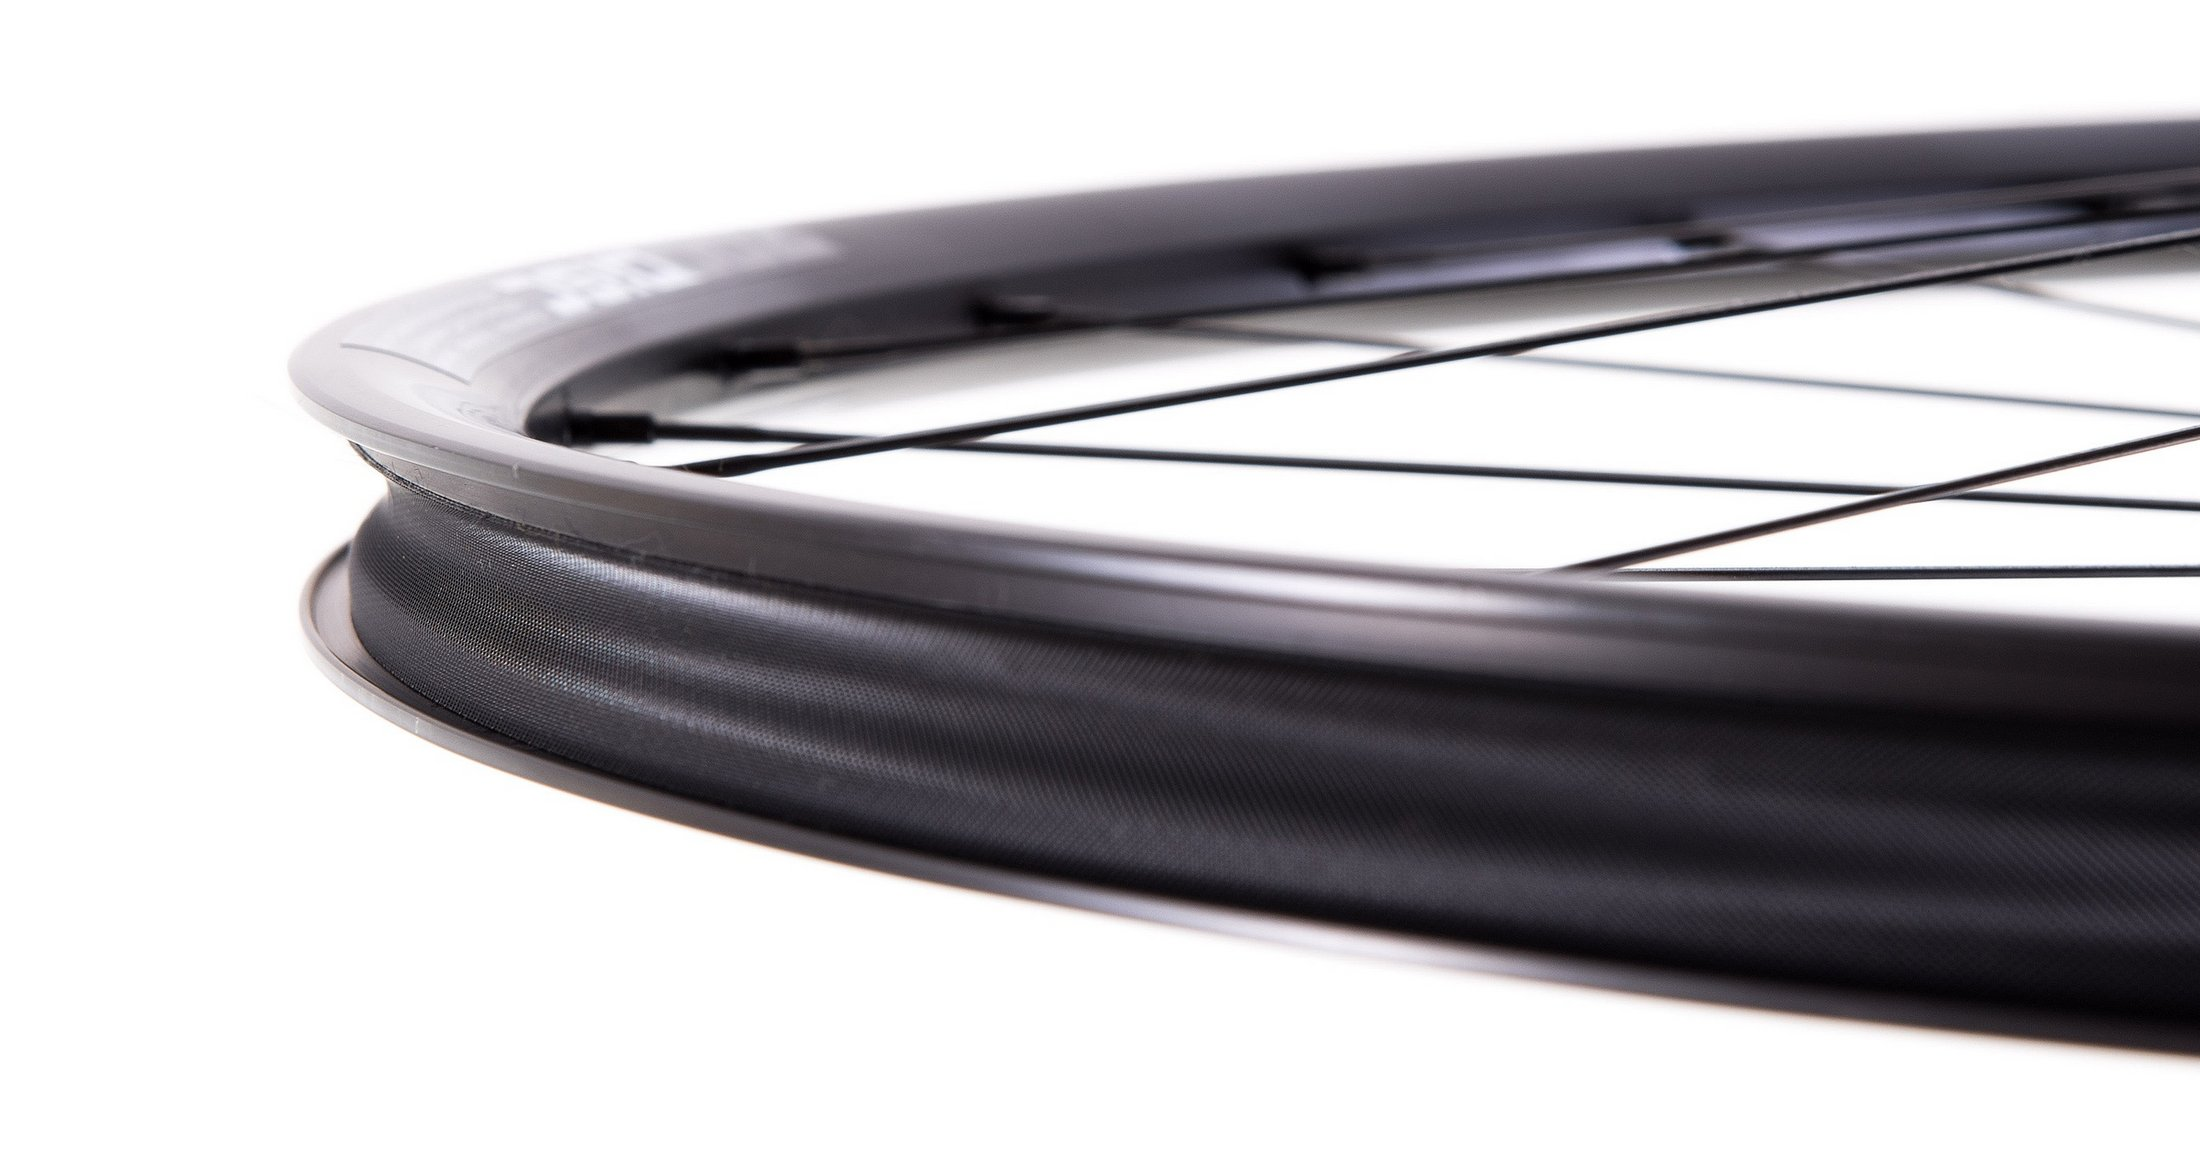 Kinesis Racelight 700 - Tubeless Wheel